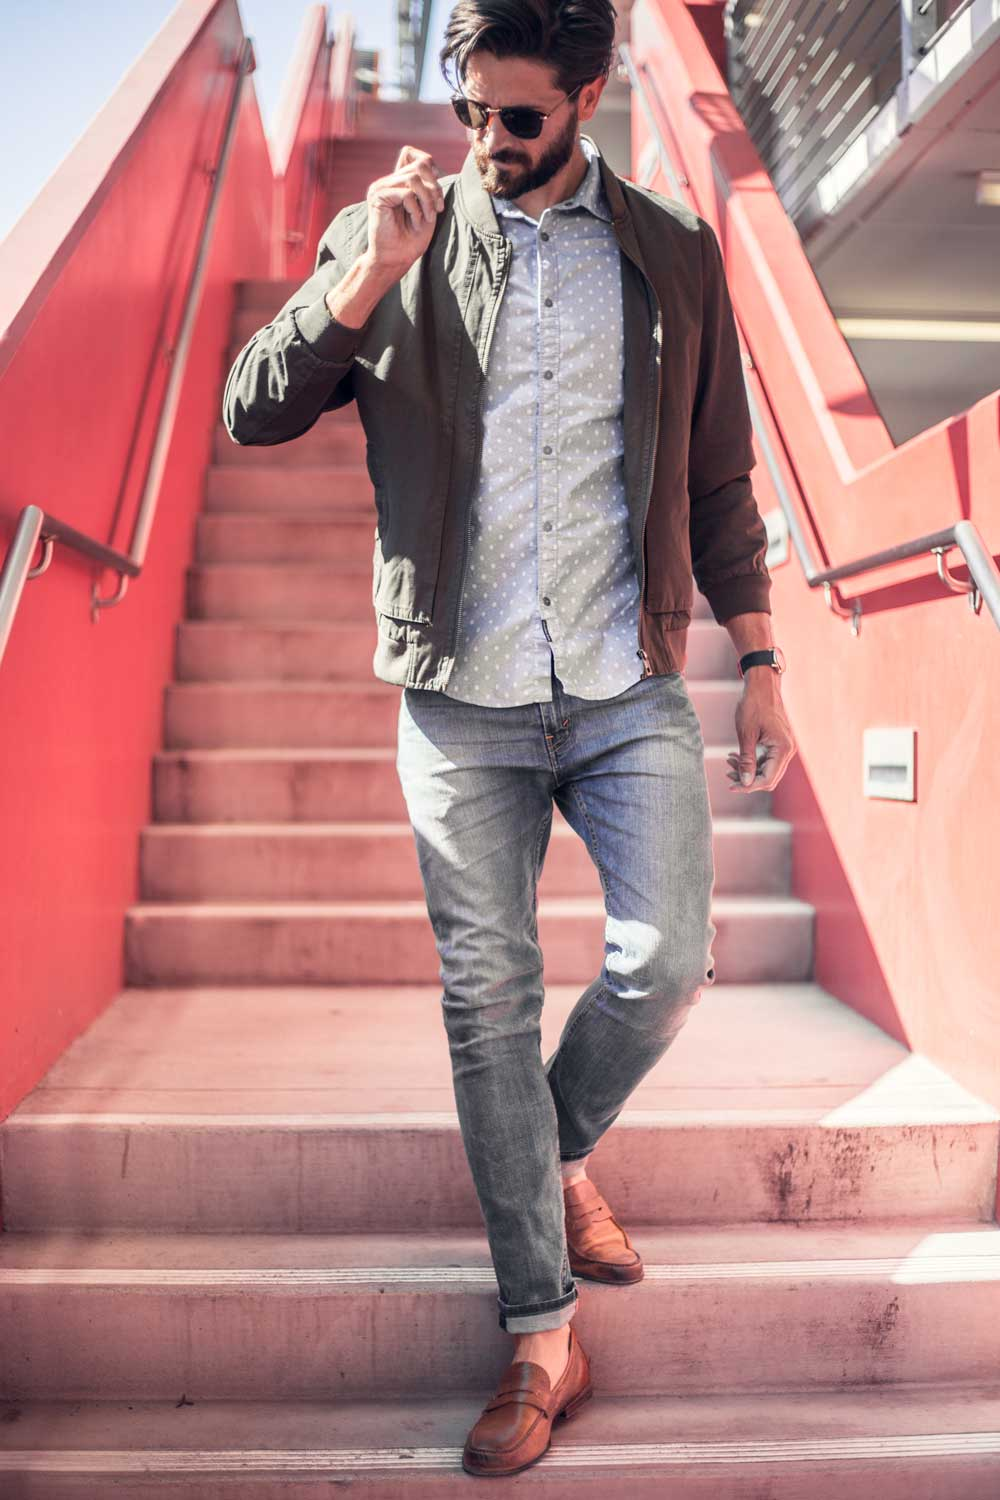 men spring fashion outfit ideas style inspiration   green bomber jacket loafers light wash jeans